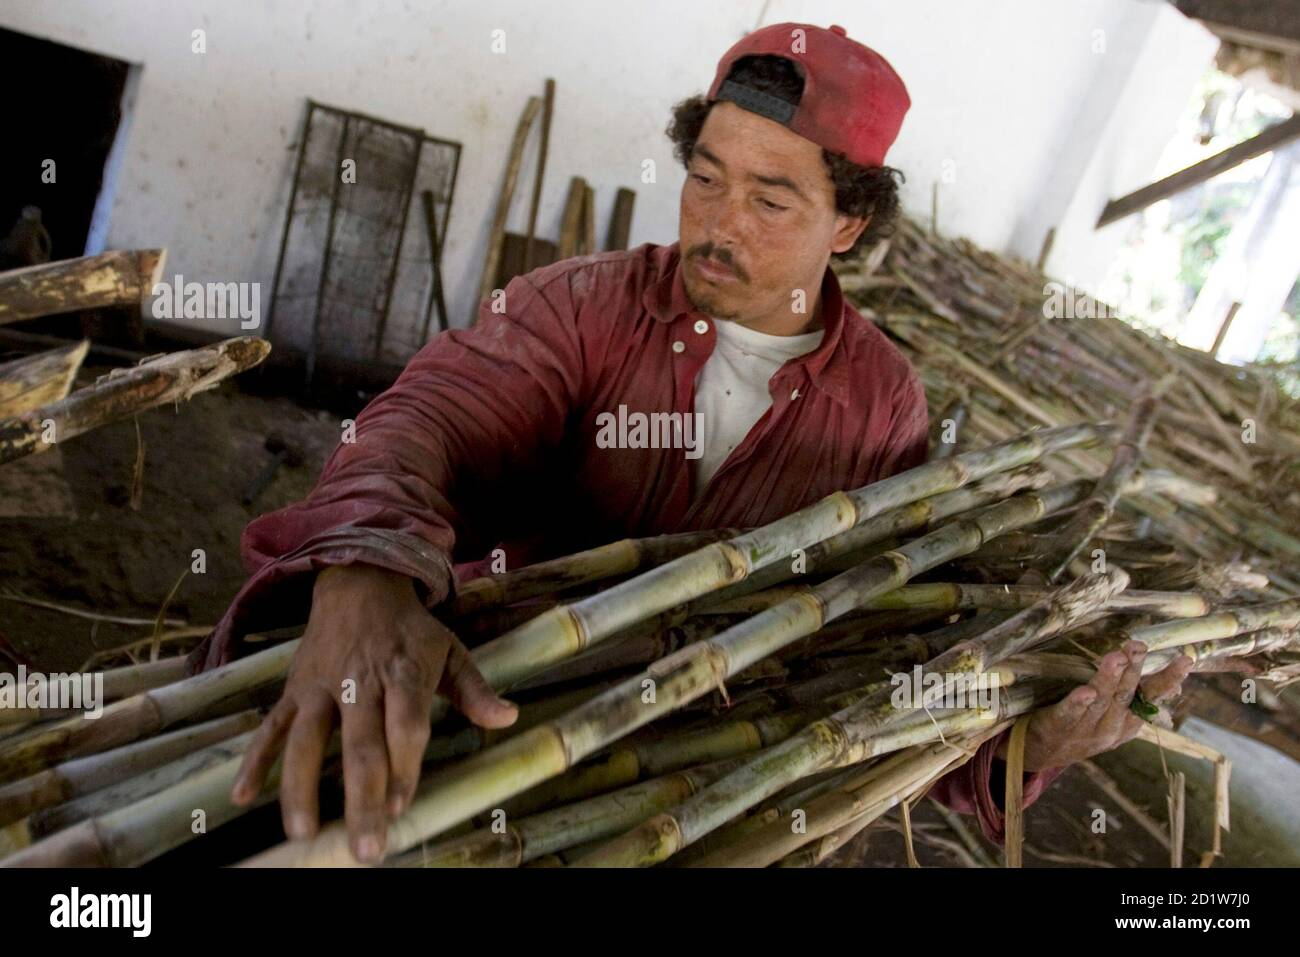 A worker processes sugar cane for cachaca at a micro-distillery, or alambique, farm about 150 kms ( 93 miles) northwest of Rio de Janeiro, August 29, 2008.  Brazil produces more than 1.8 billion liters of cachaca, the country's most popular drink, each year. REUTERS/Bruno Domingos (BRAZIL) Foto de stock